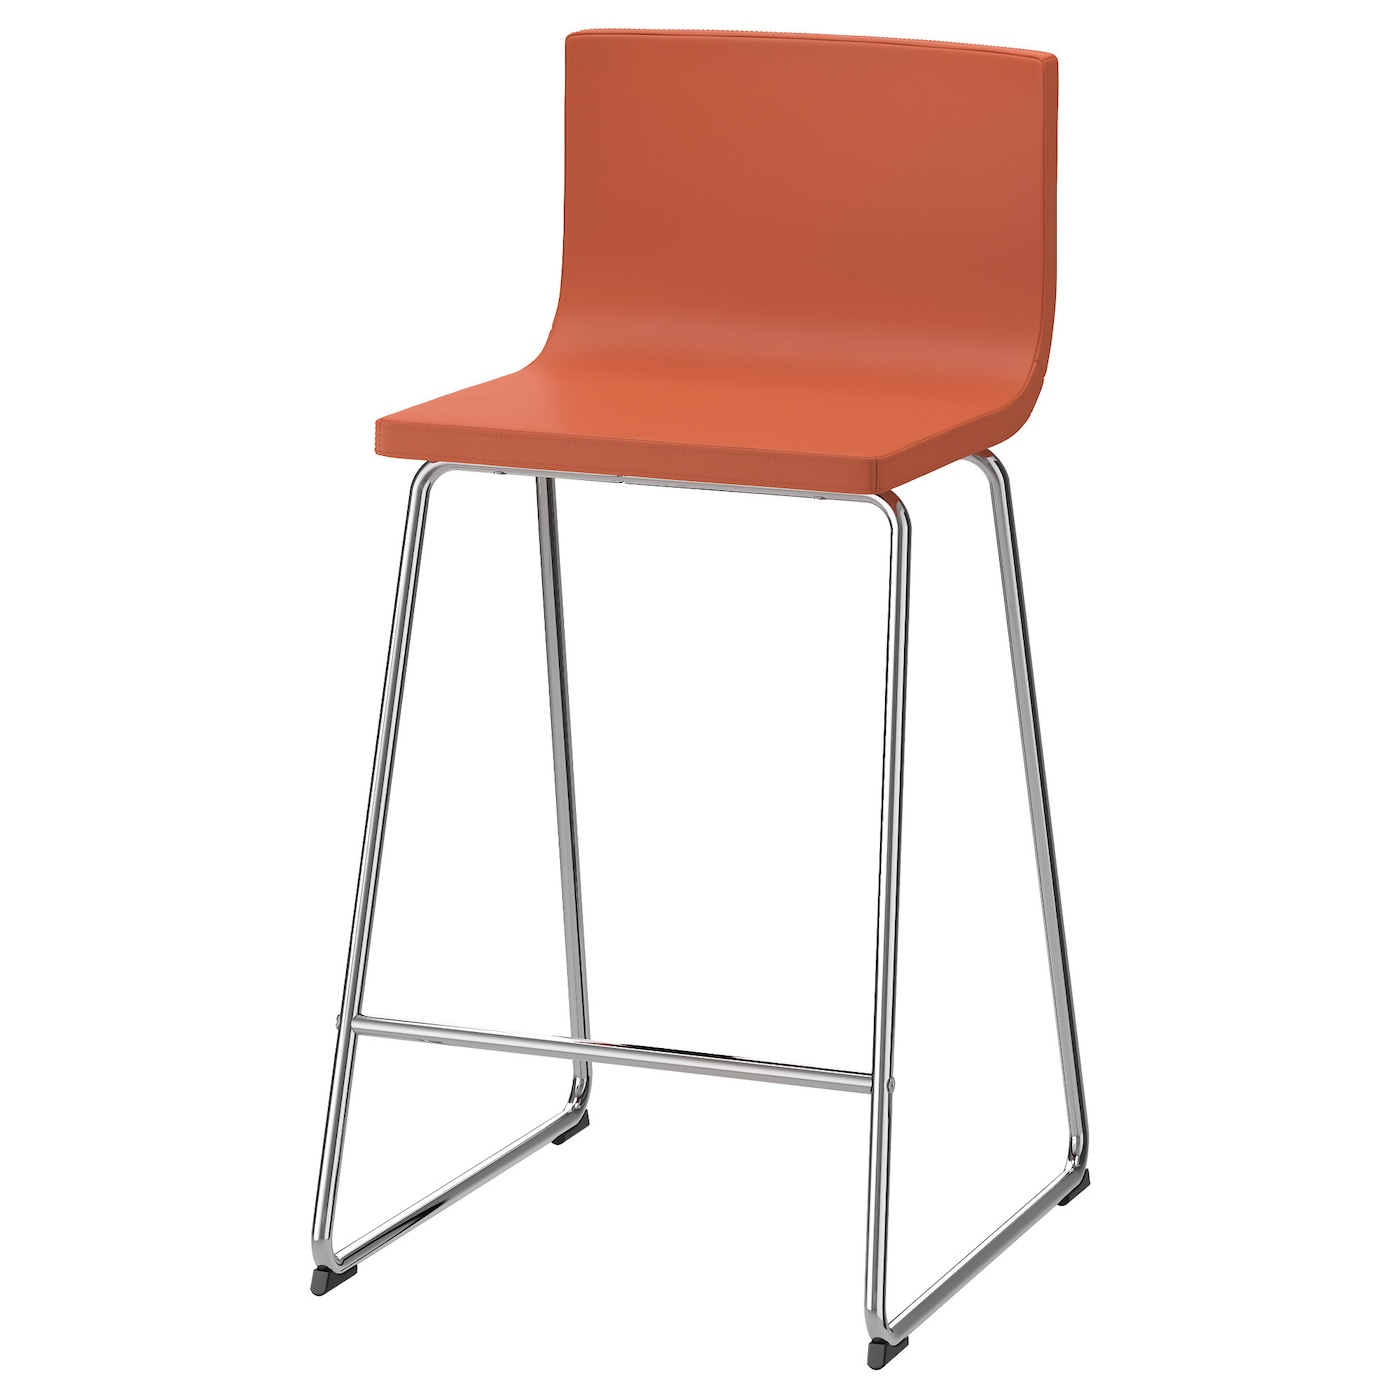 bernhard bar stool with backrest chrome plated mjuk orange